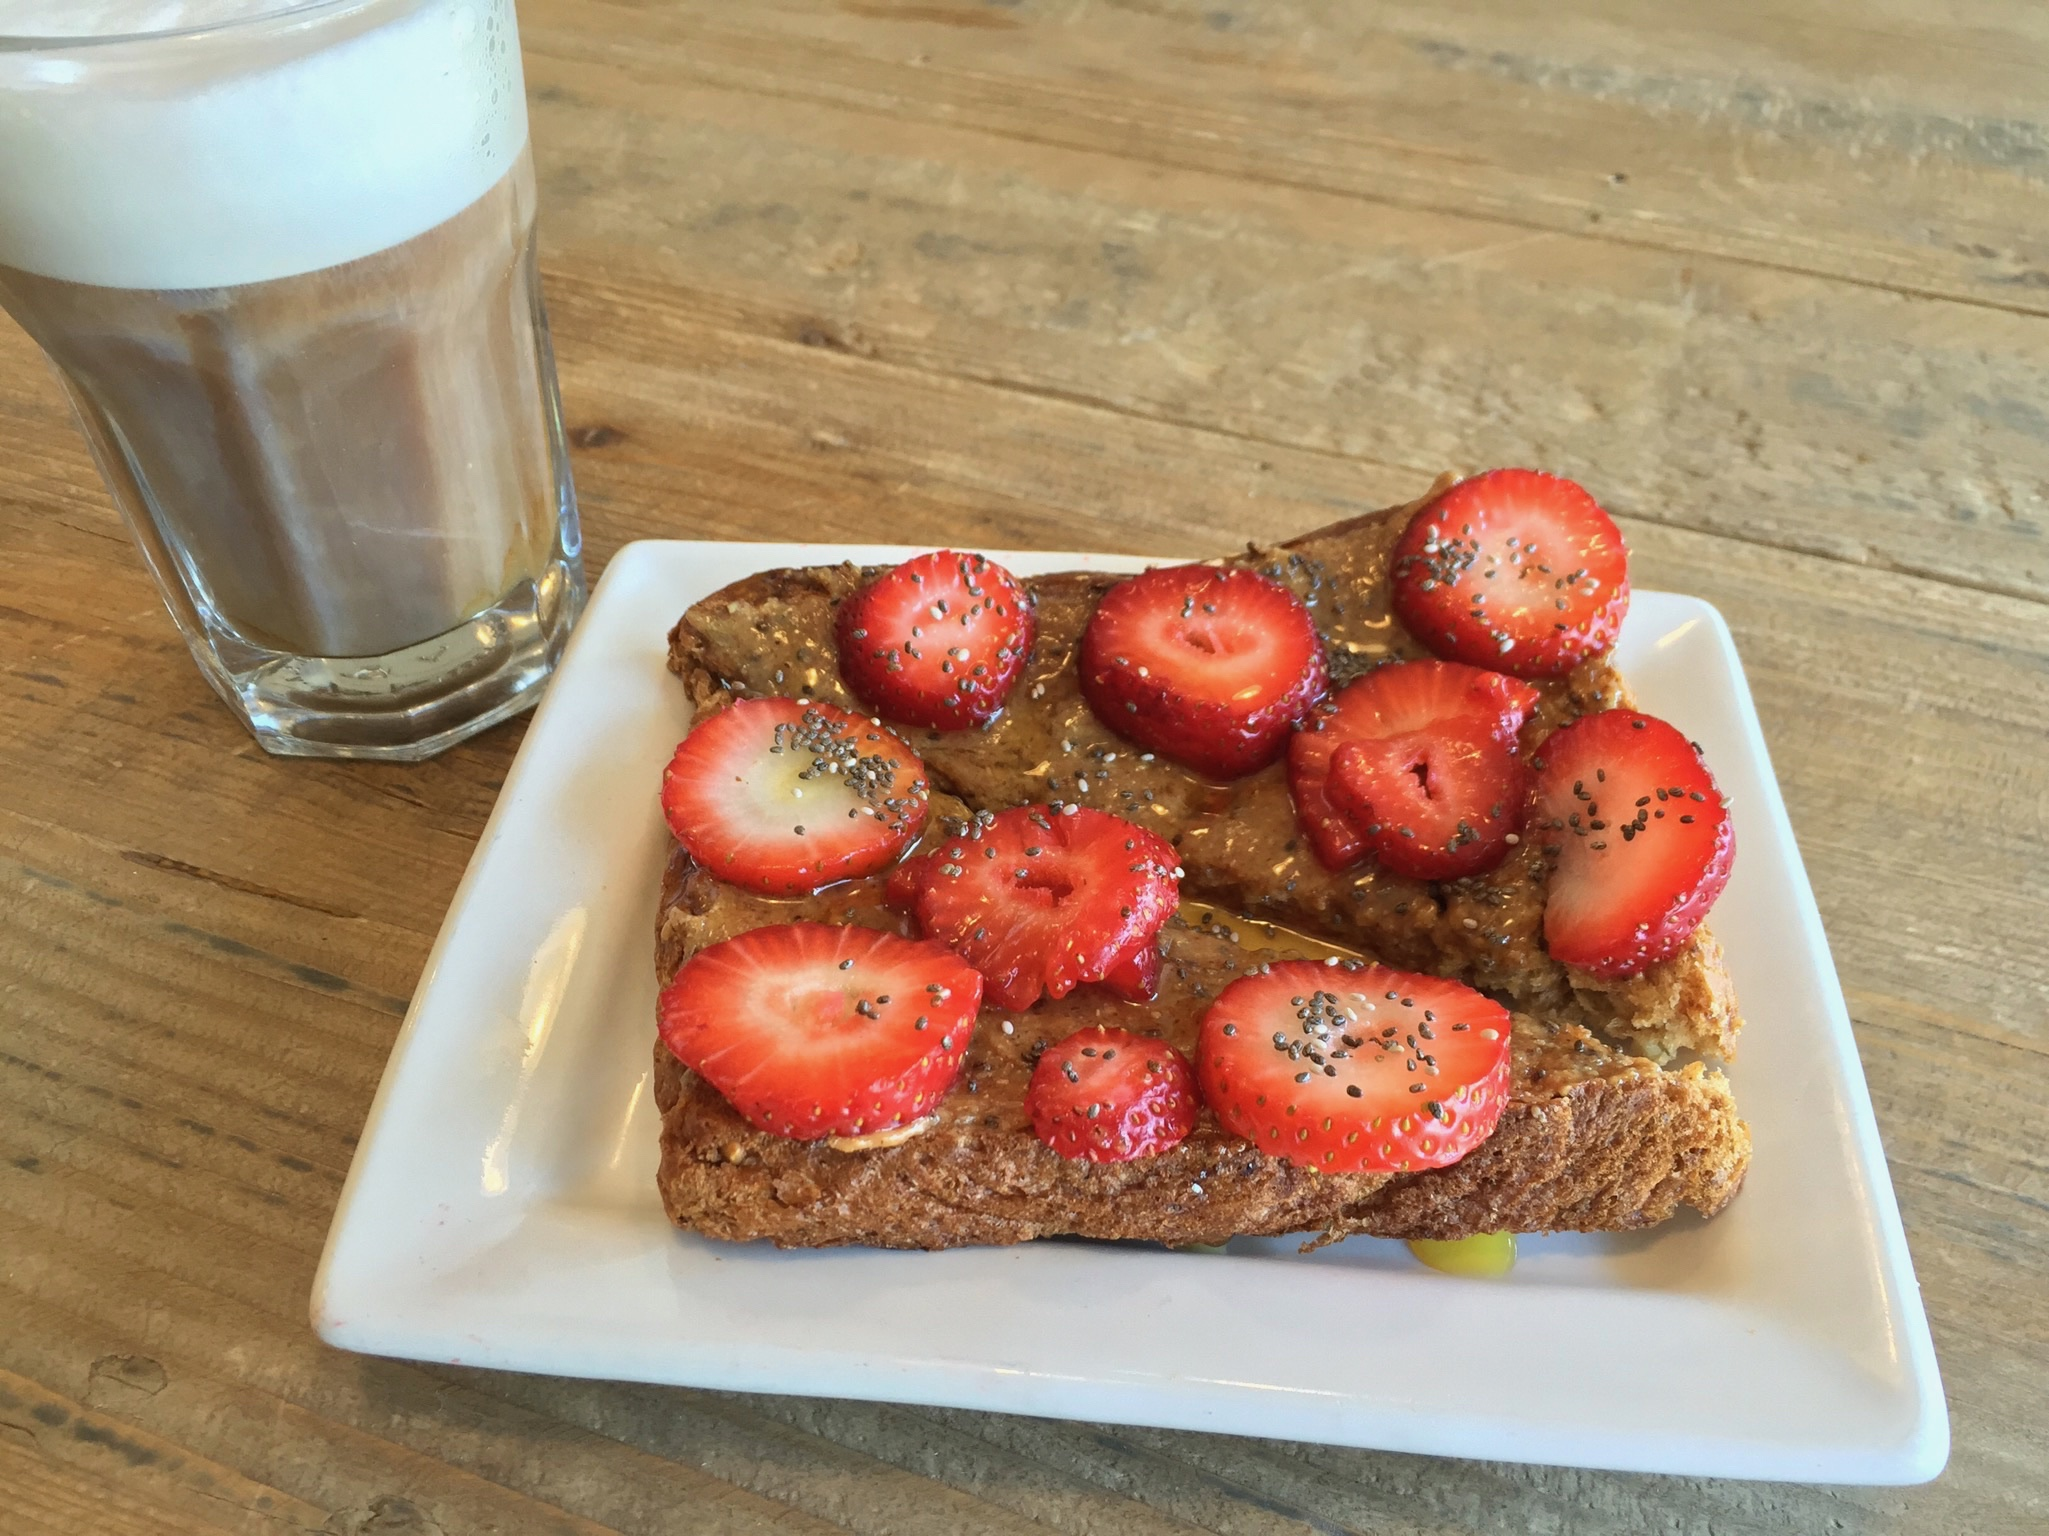 House-made Almond toast